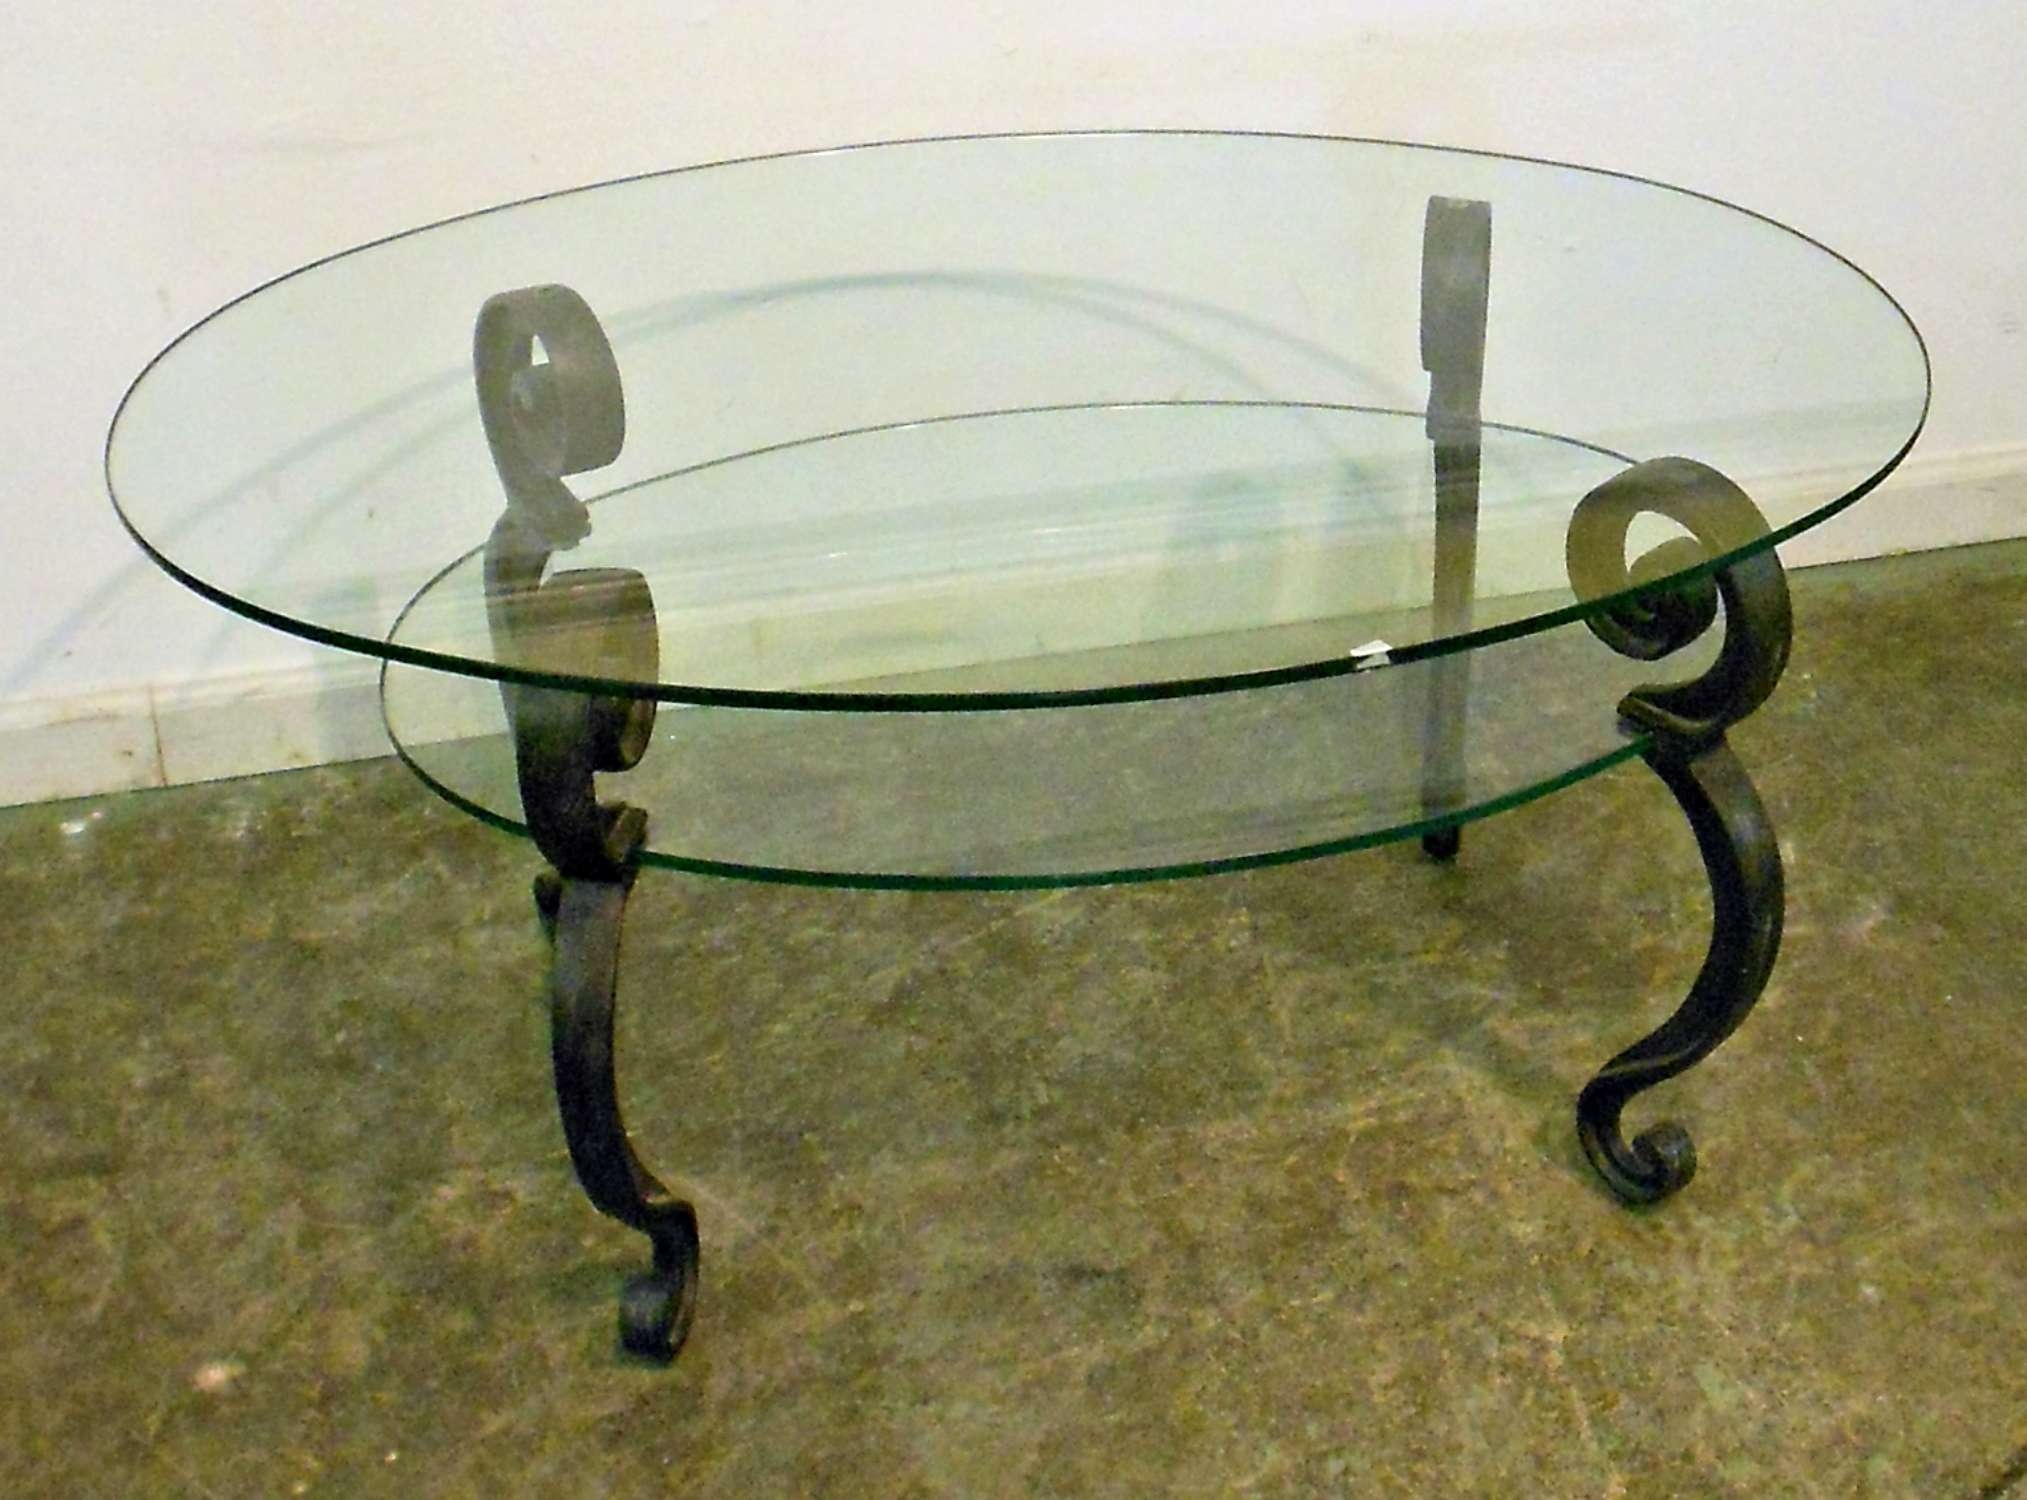 Popular Retro Glass Coffee Tables Intended For Vintage Glass Top Coffee Table With Black Metal Legs And Shelves (View 17 of 20)